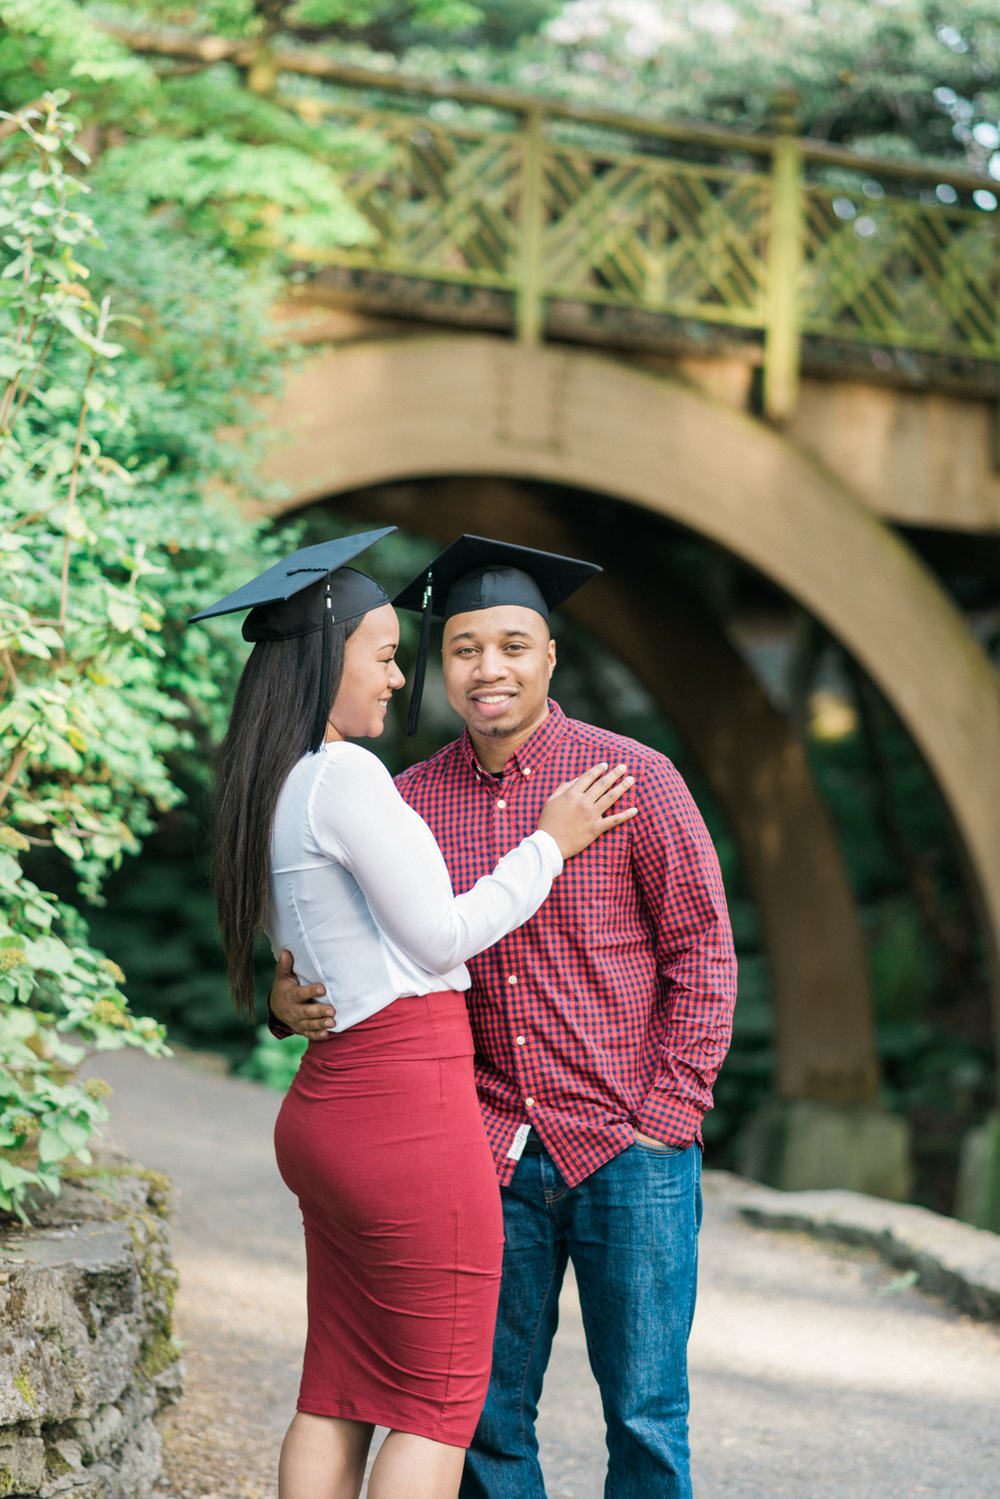 portland-engagement-photographer-wsu-graduation-portrait-crystal-springs-rhododendron-garden-shelley-marie-photo-16